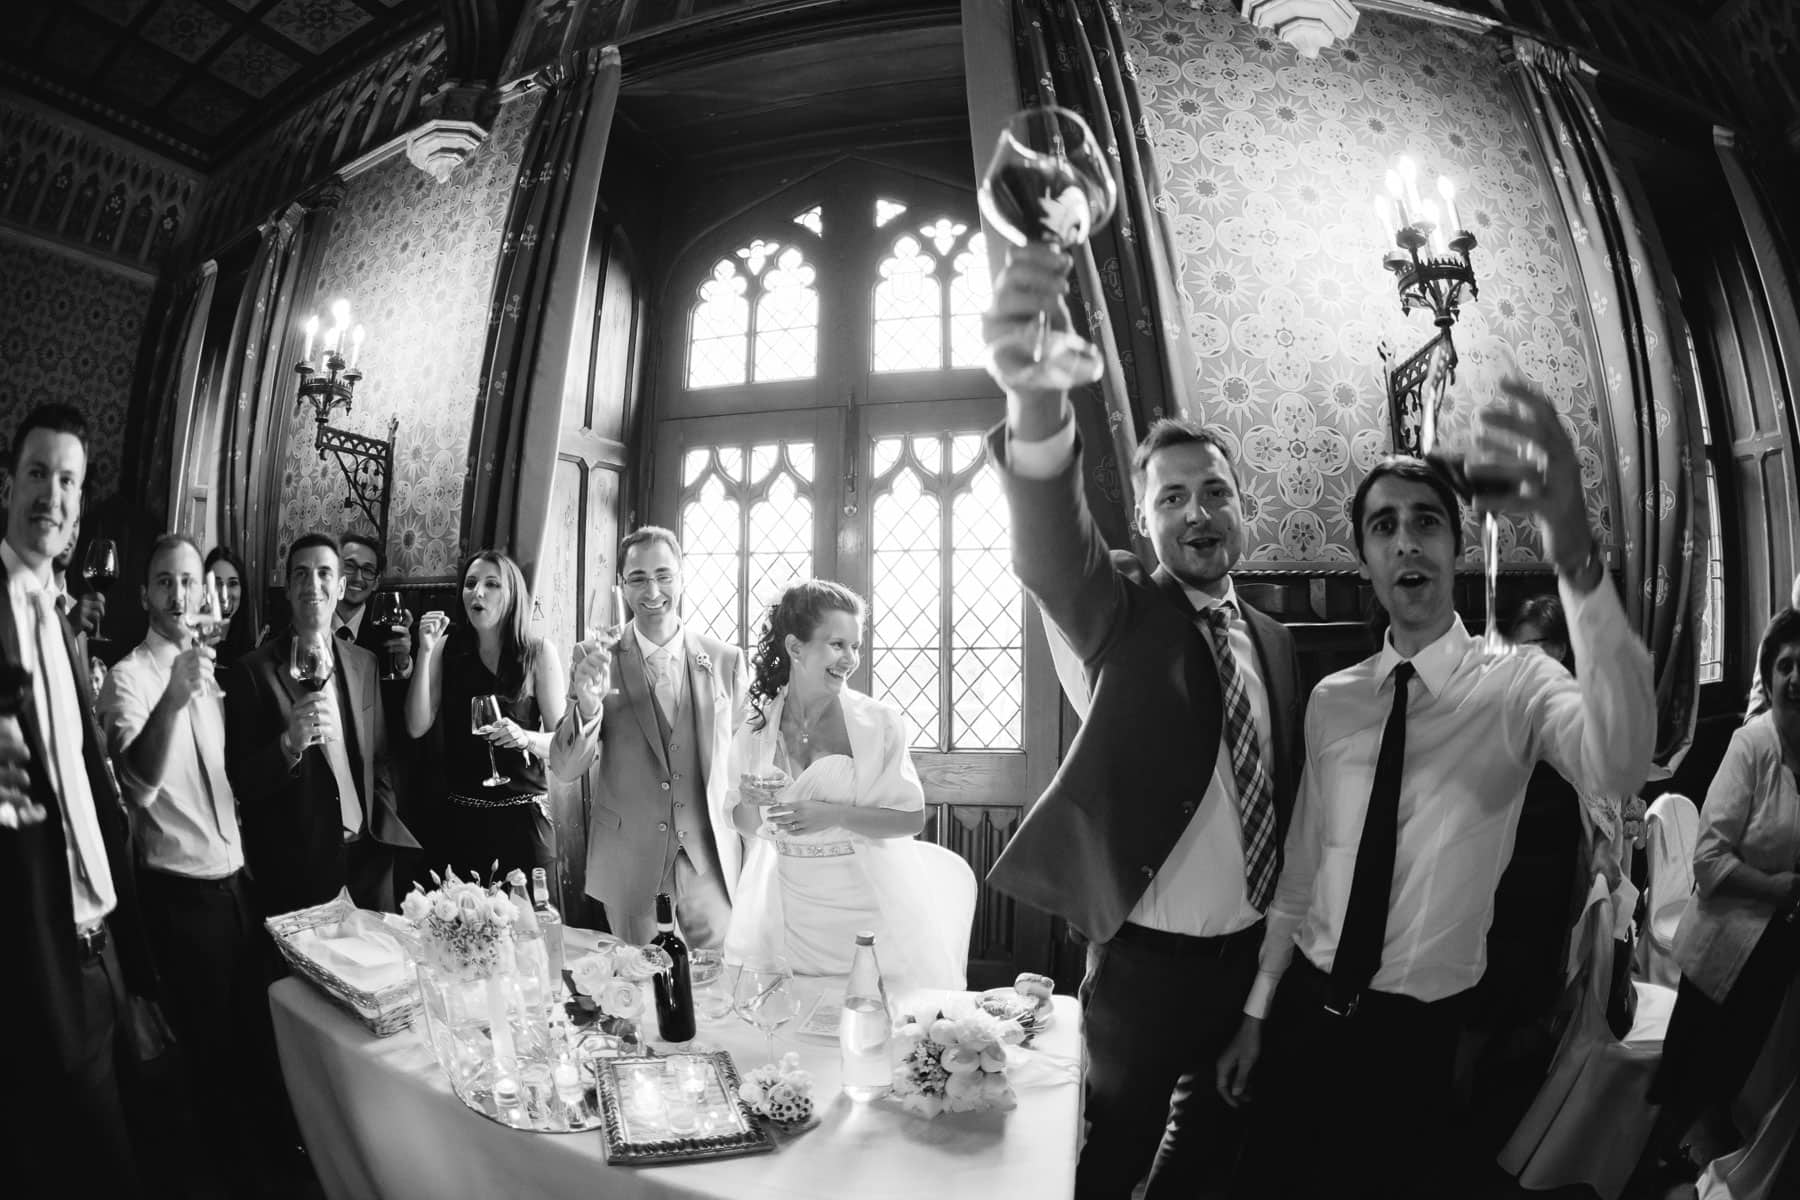 Guests raise a toast to the newly weds, towards the camera, in the reception hall at a destination wedding in Castello Dal Pozzo, Italy.